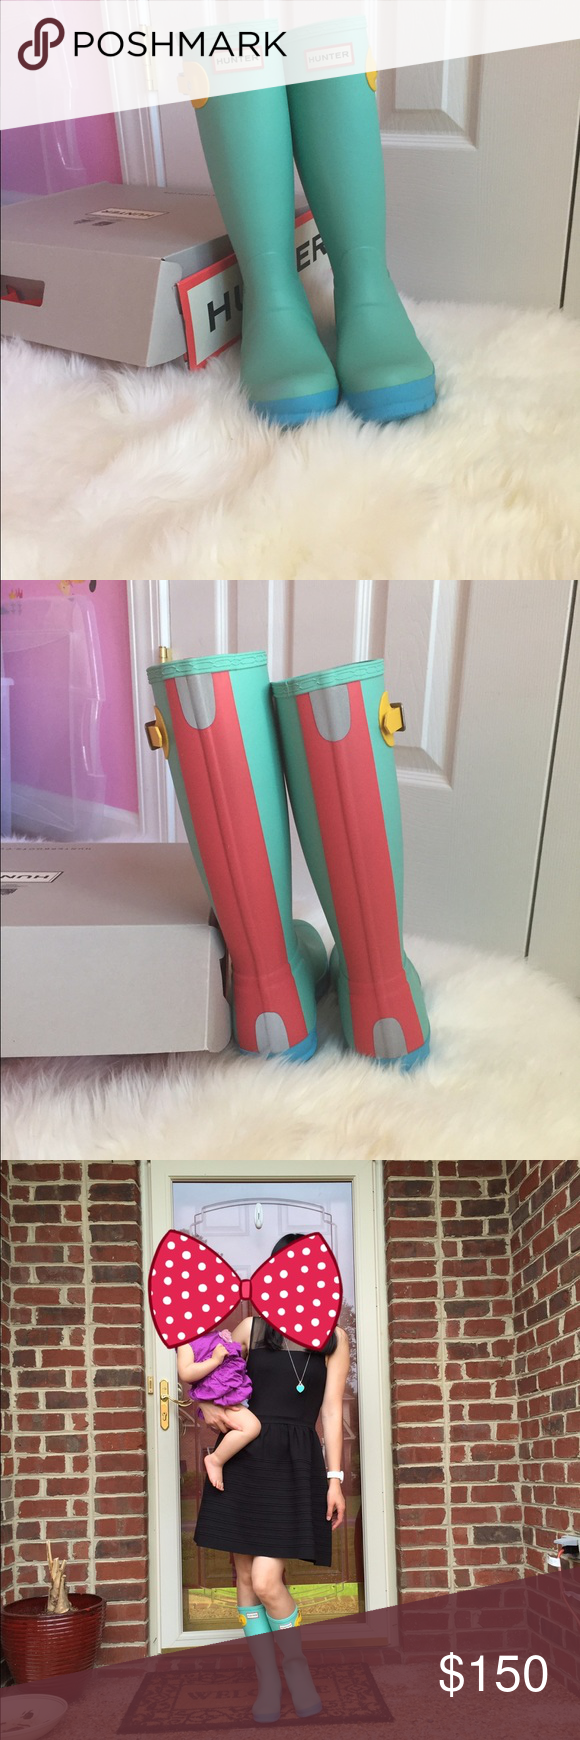 New Authentic Tiffany blue Hunter boots Brand new rare Tiffany blue Hunter boots.Youth size 5 to fit woman 5-6.Super stylish.Price is firm. Hunter Boots Shoes Winter & Rain Boots